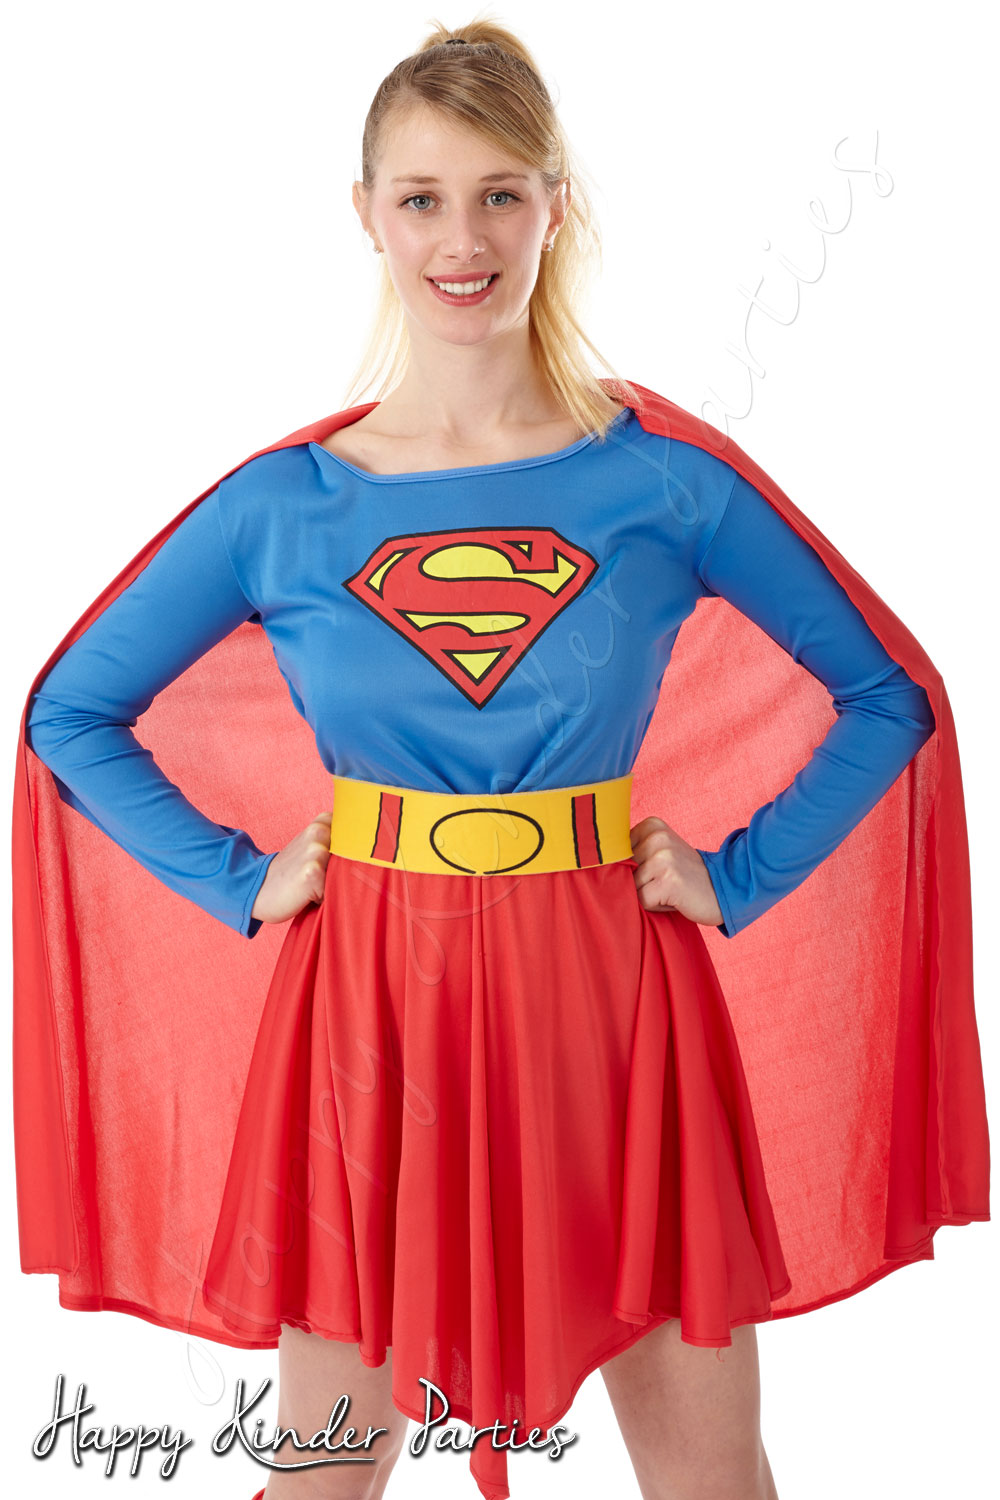 Super Girl Childrens Party Entertainer Costume